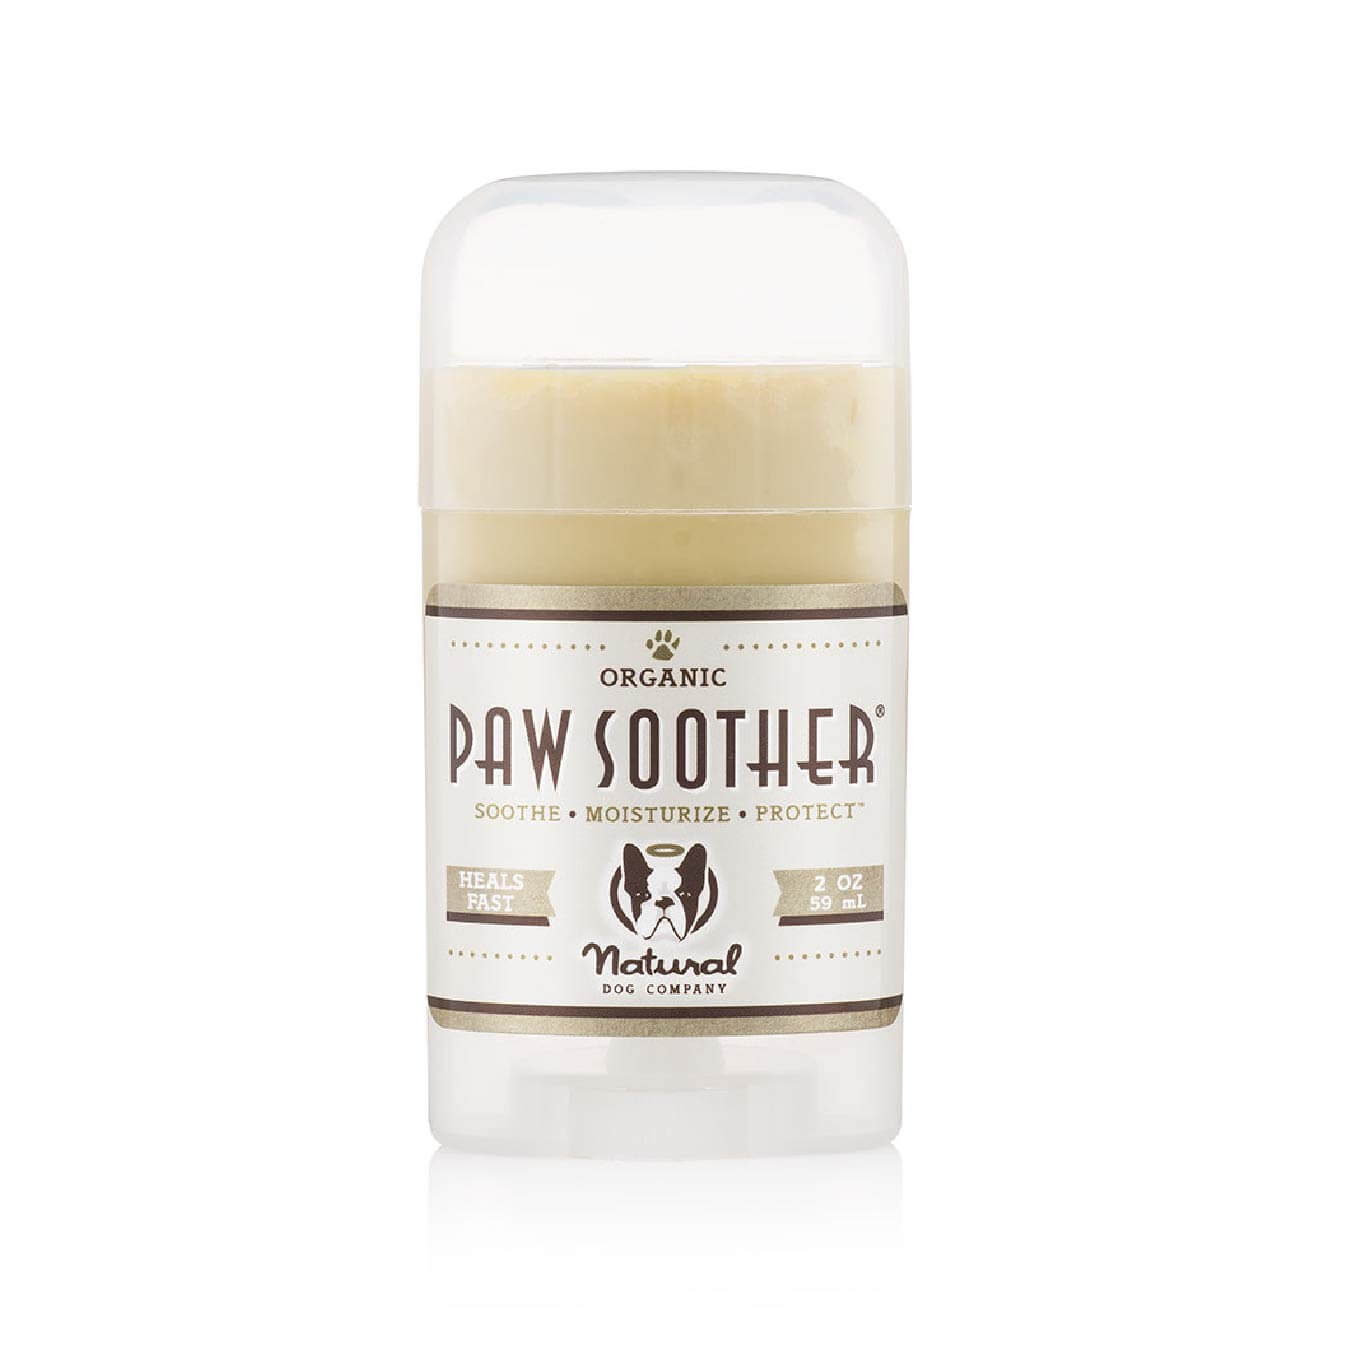 Natural Dog Company Paw Soother - BIS, Dogs, Grooming Essentials, Latte, Natural Dog Company, New Dog, Paw Licking, Skin - Shop Vanillapup - Online Pet Shop